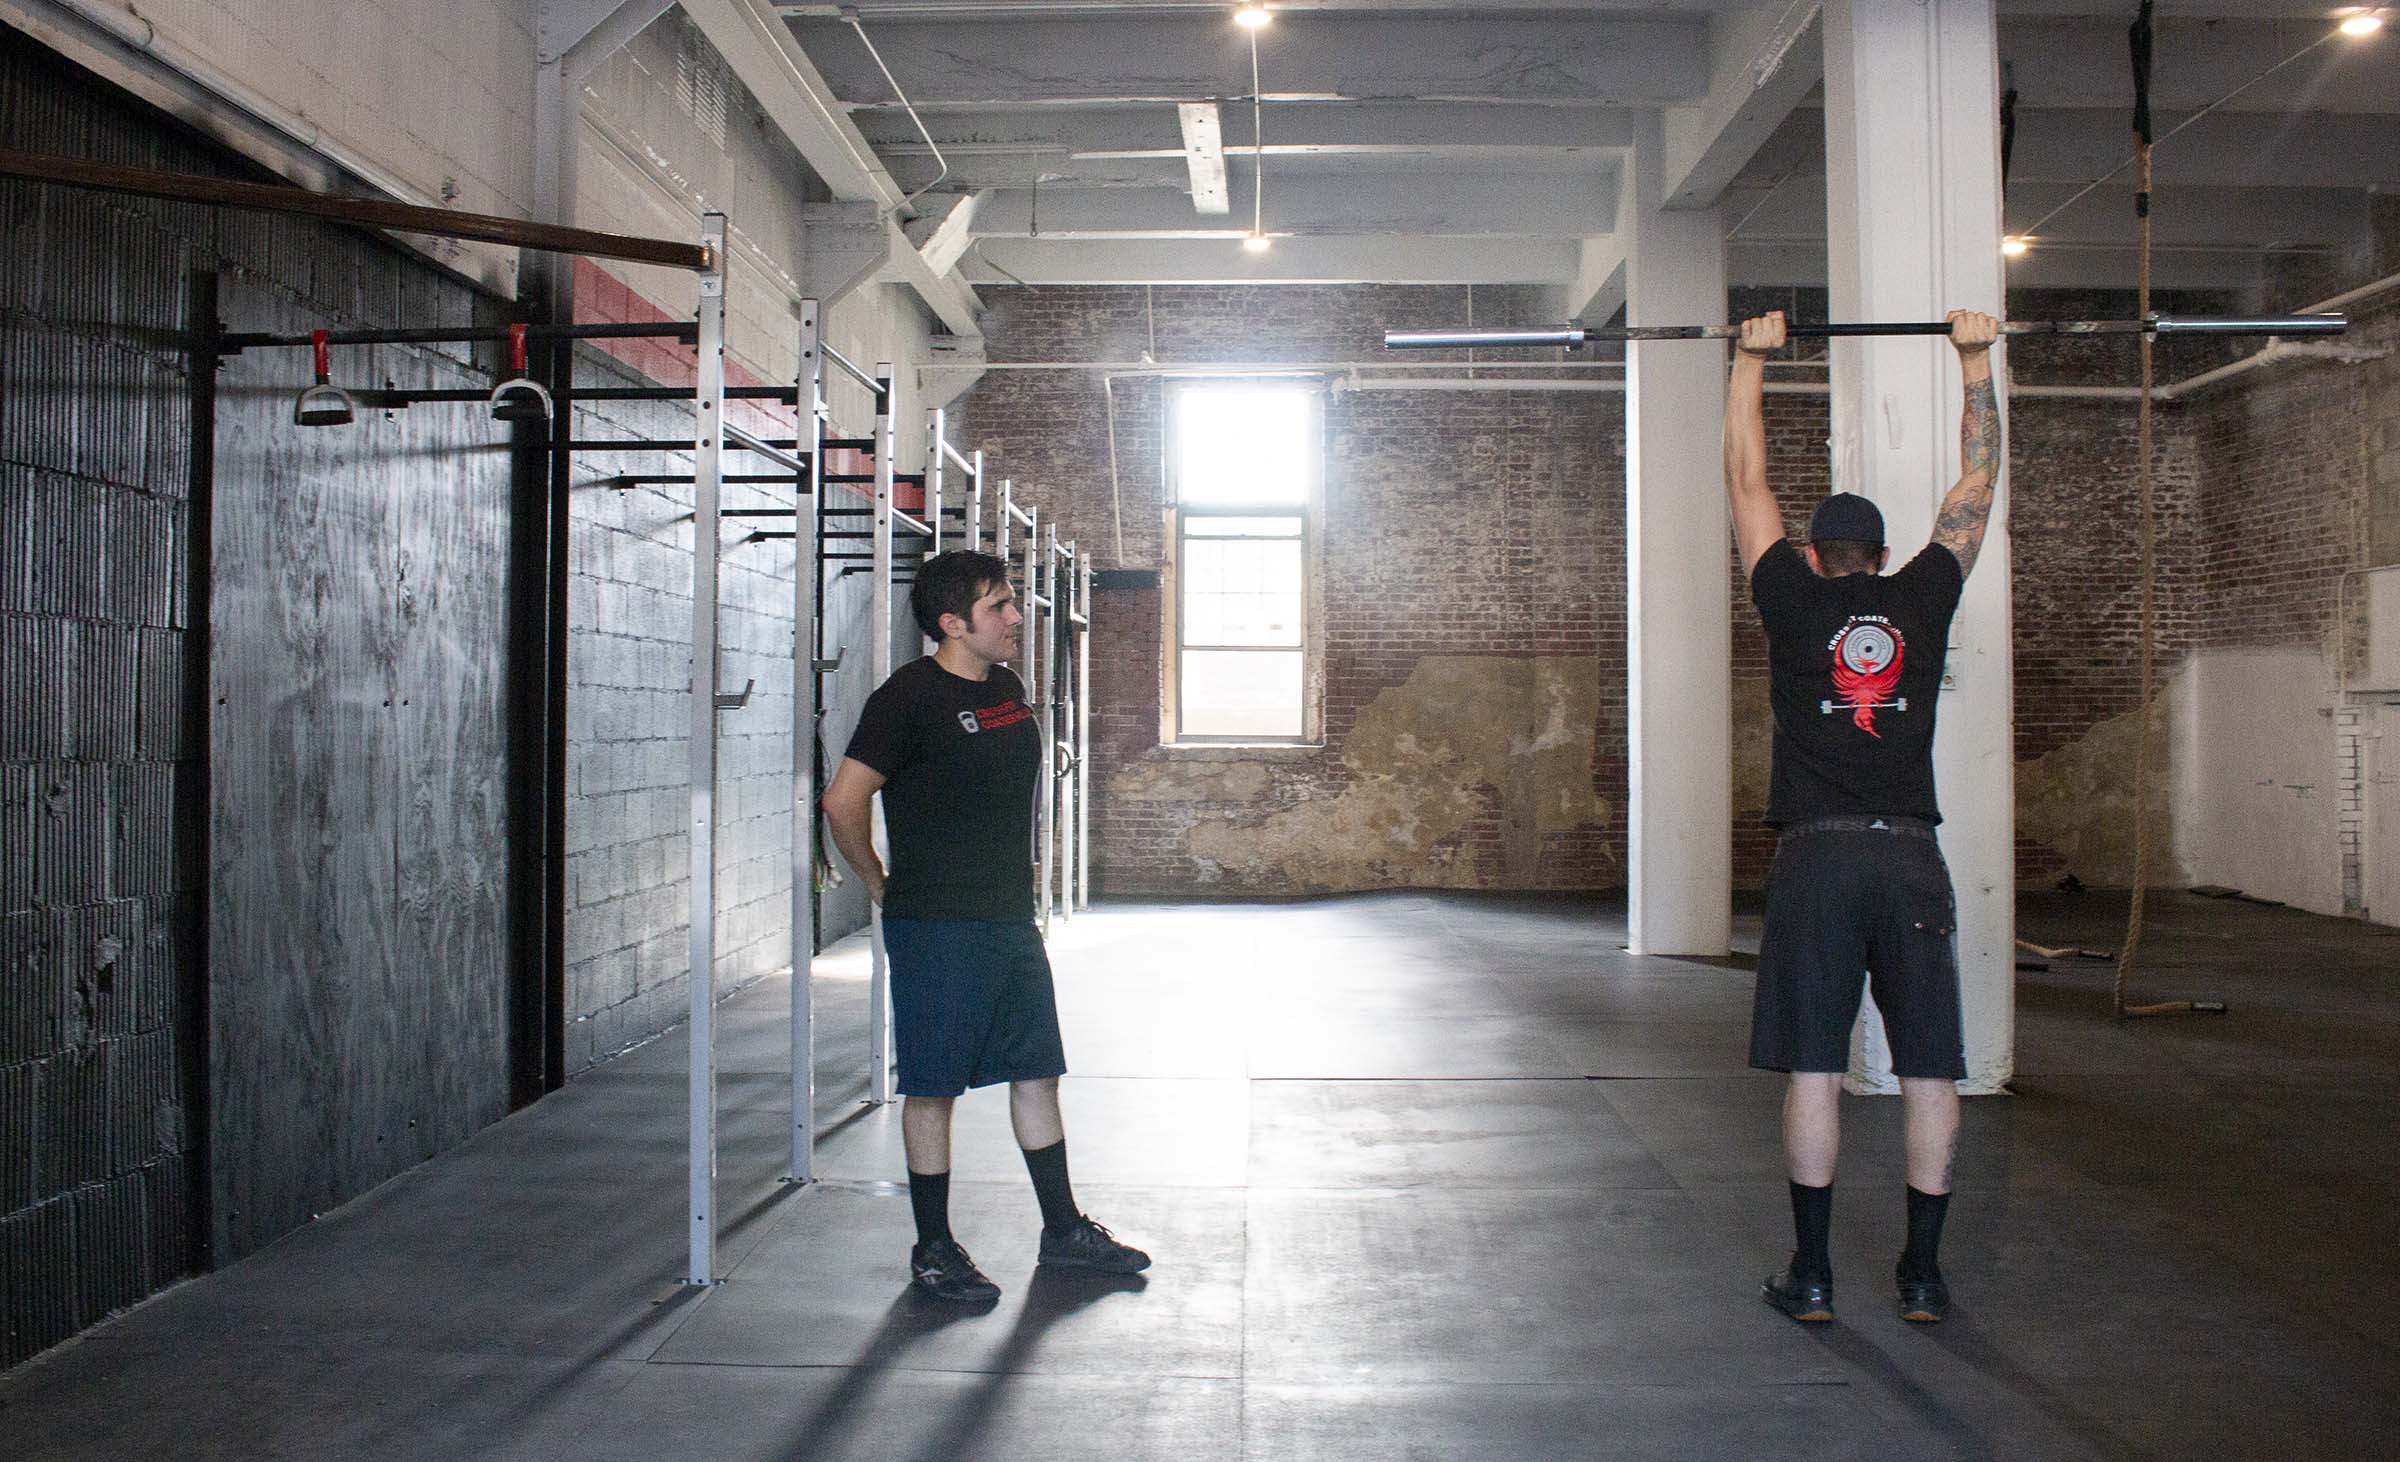 CrossFit Fosters New Health and Fitness Facility in